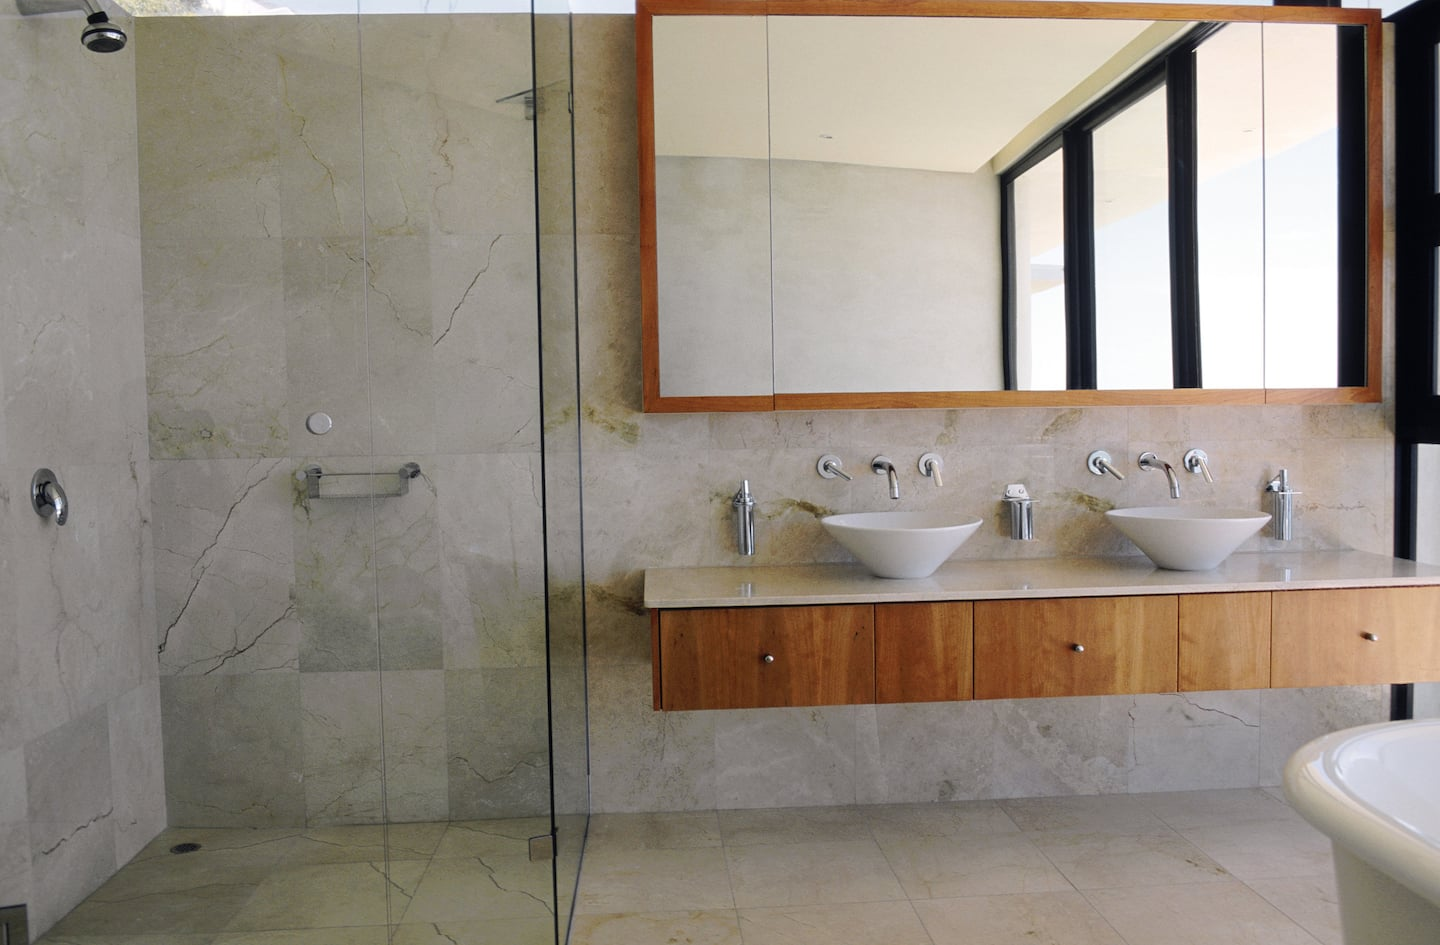 a modern looking bathroom scene with two bowl sinks on a wood faced shelf counter - Bathroom Cabinets Ideas